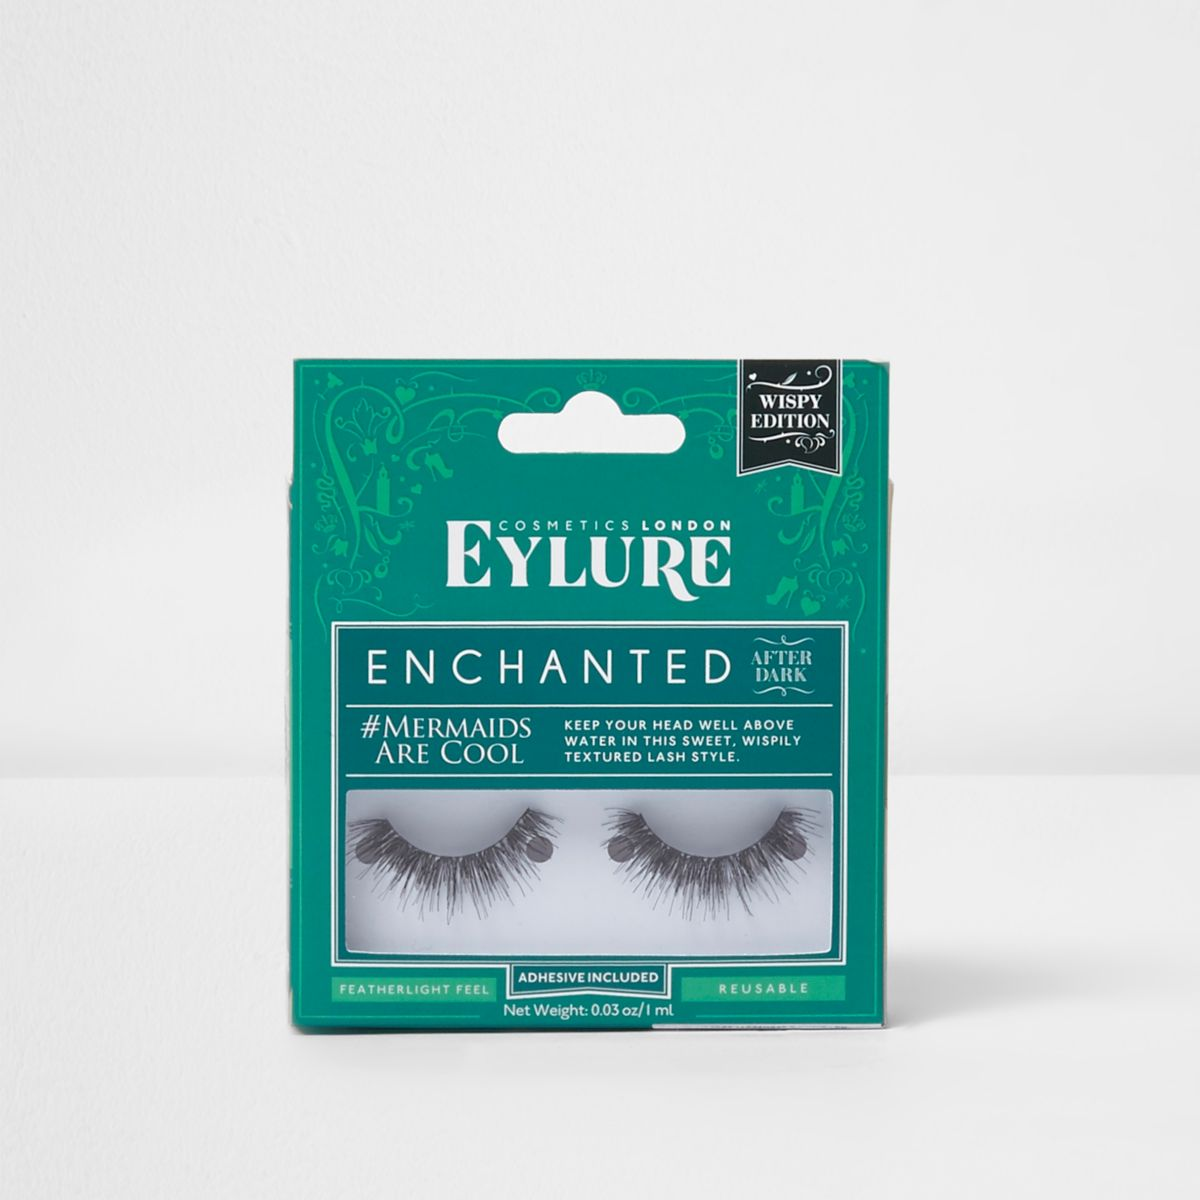 Eylure 'enchanted' false eyelashes